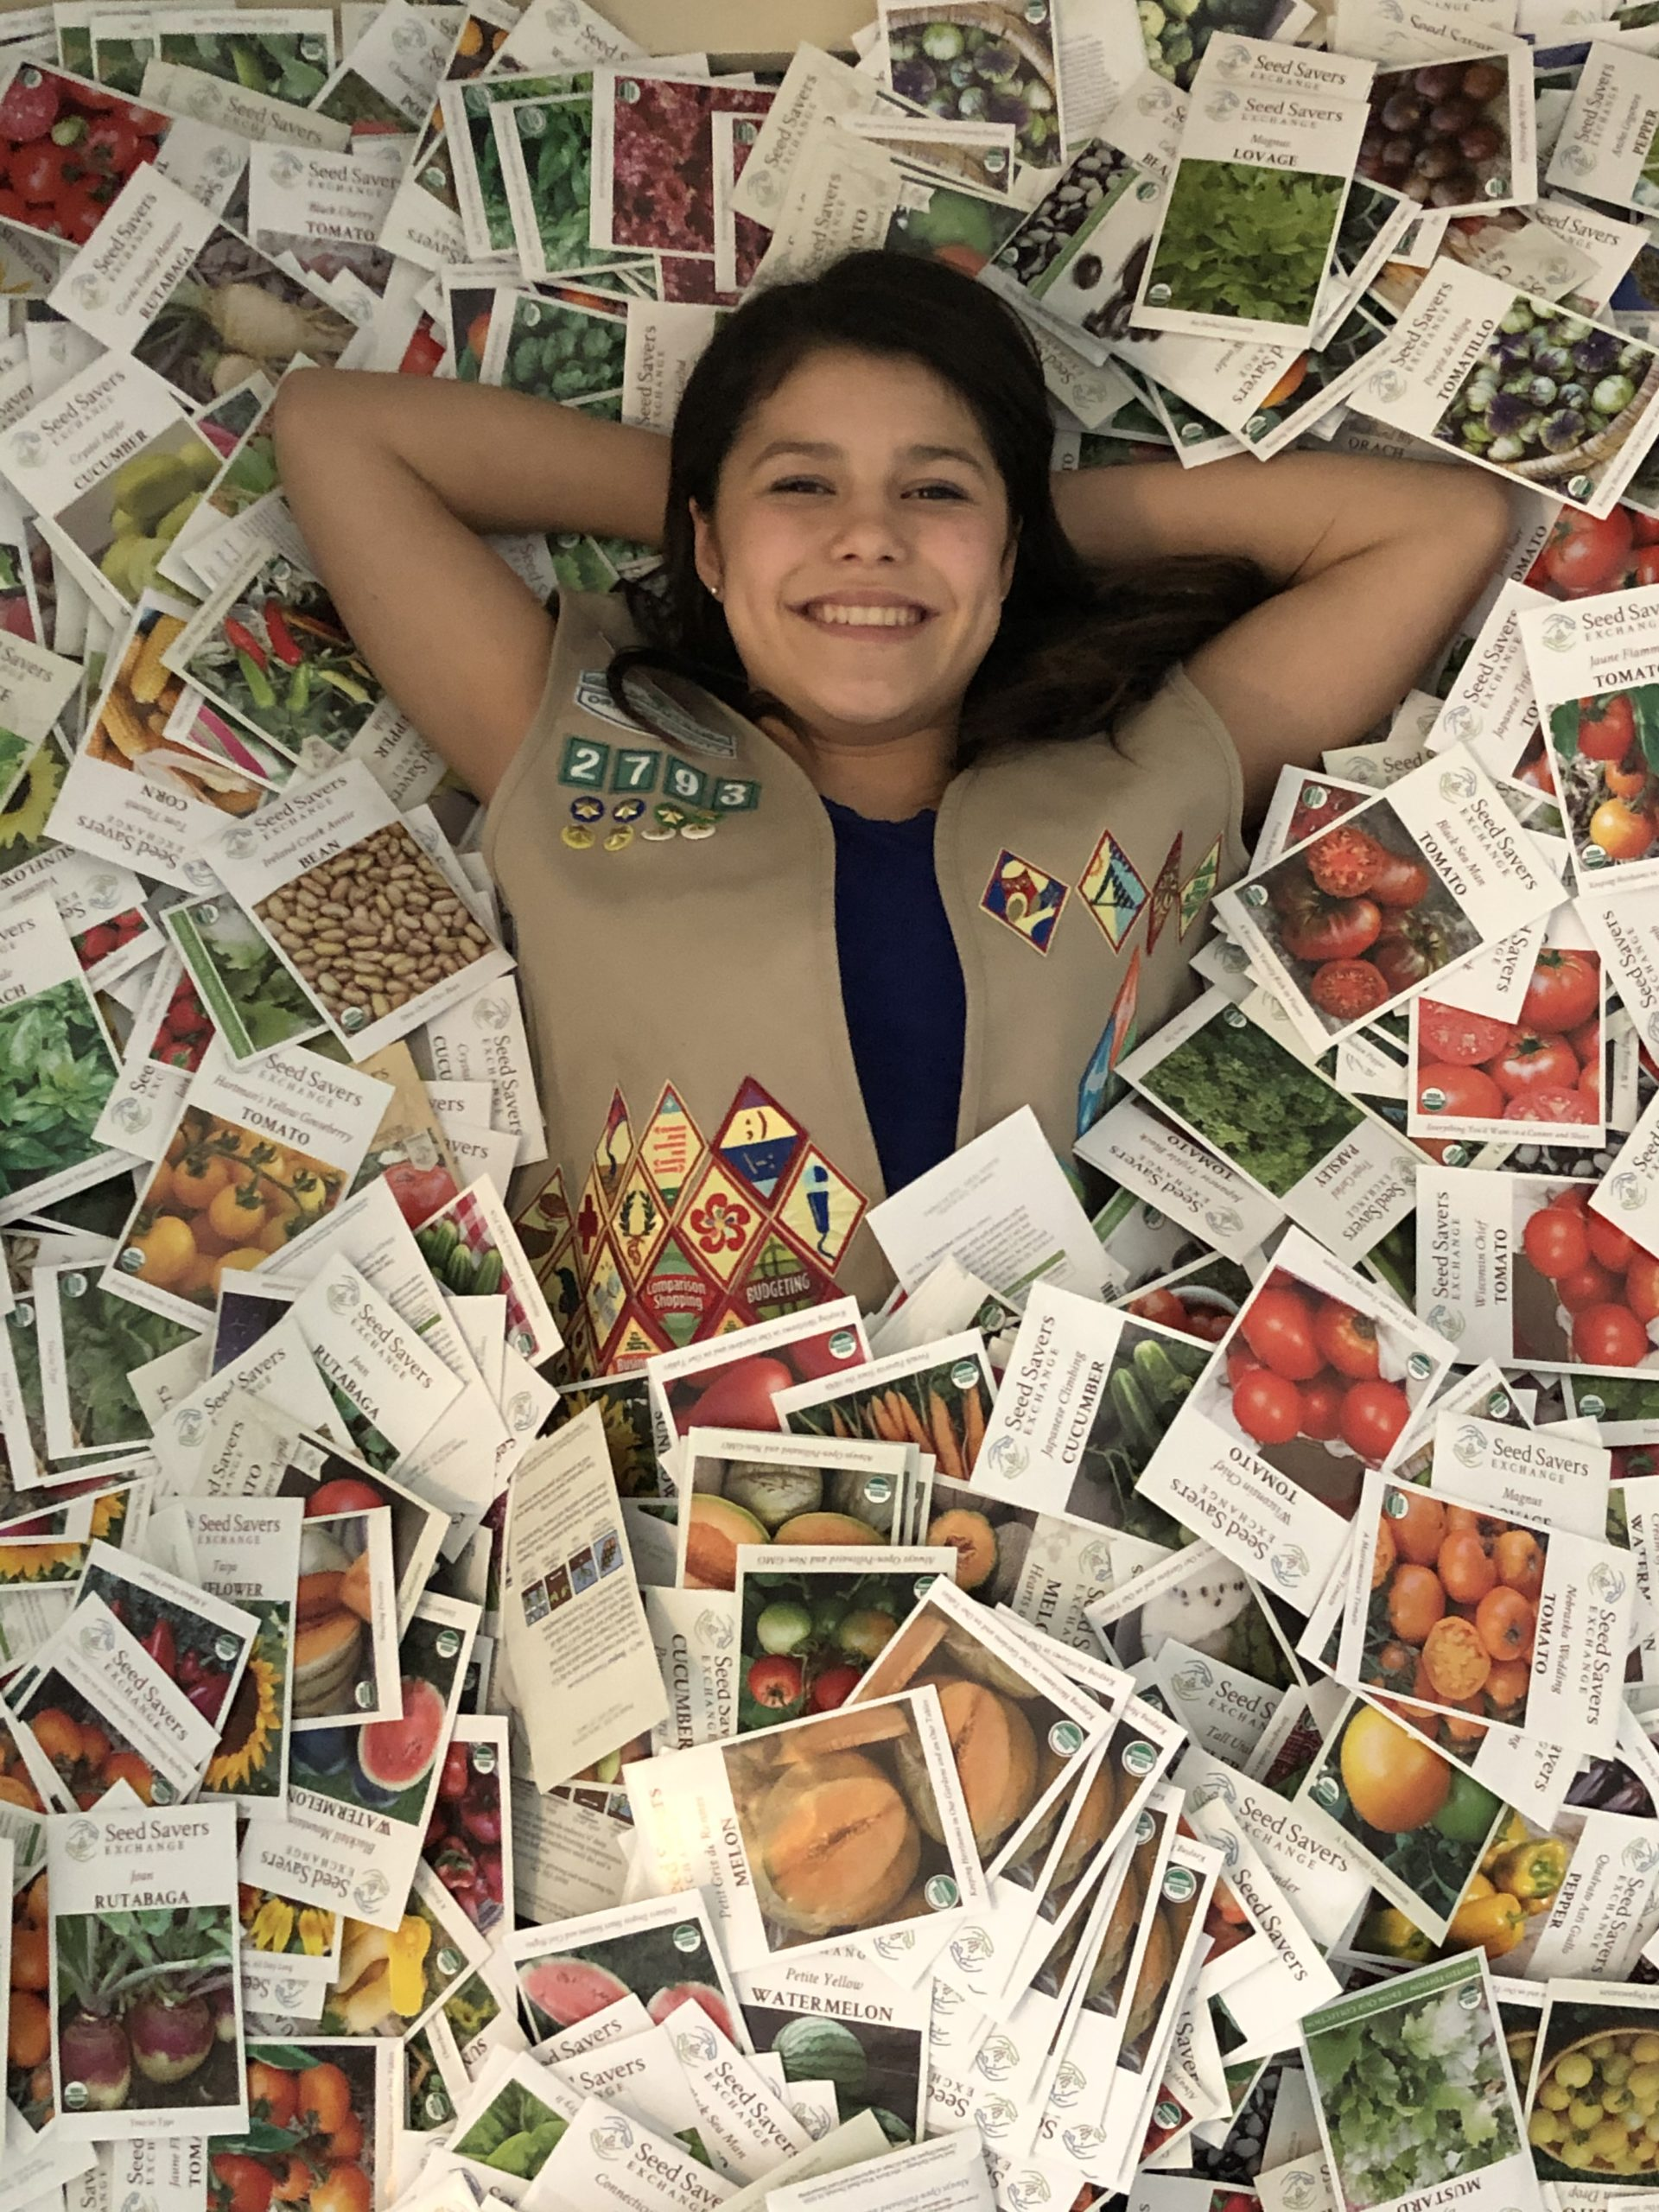 This Teenager Helped Launch Seed Libraries in Every State - Modern Farmer